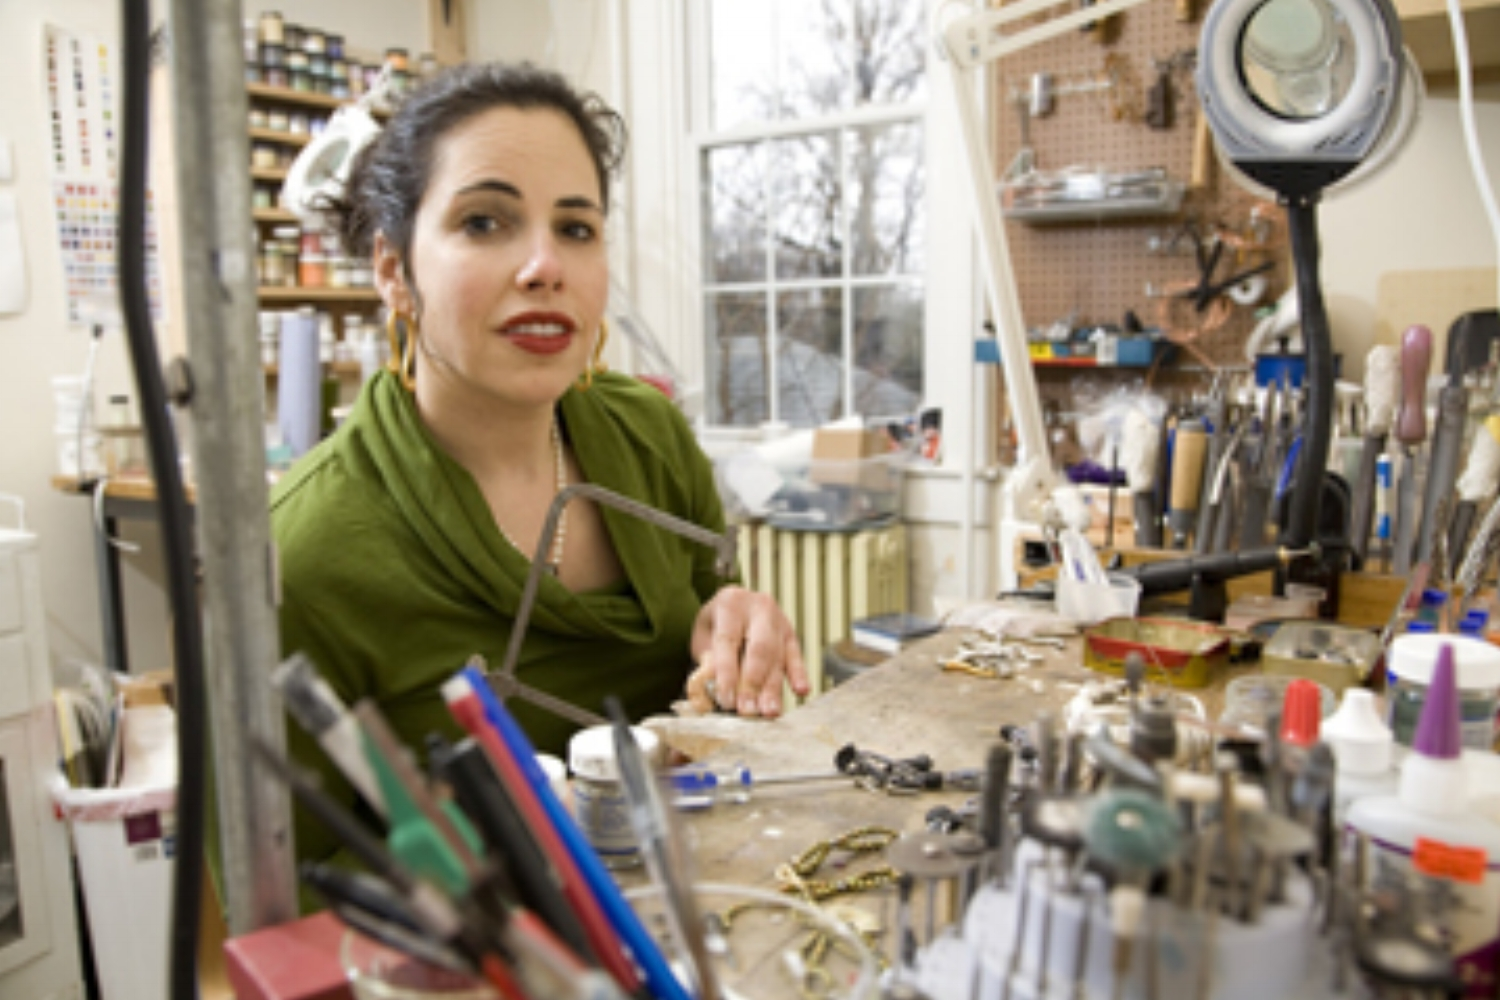 Shana Kroiz is a Baltimore based jewelry designer and maker who specializes in handmade enameled and precious metal art jewelry. Kroiz is internationally recognized for her meticulous craftsmanship and sensuous sculptural forms. Shana Kroiz creates Jewelry that is sophisticated yet edgy and is spectacular to wear!